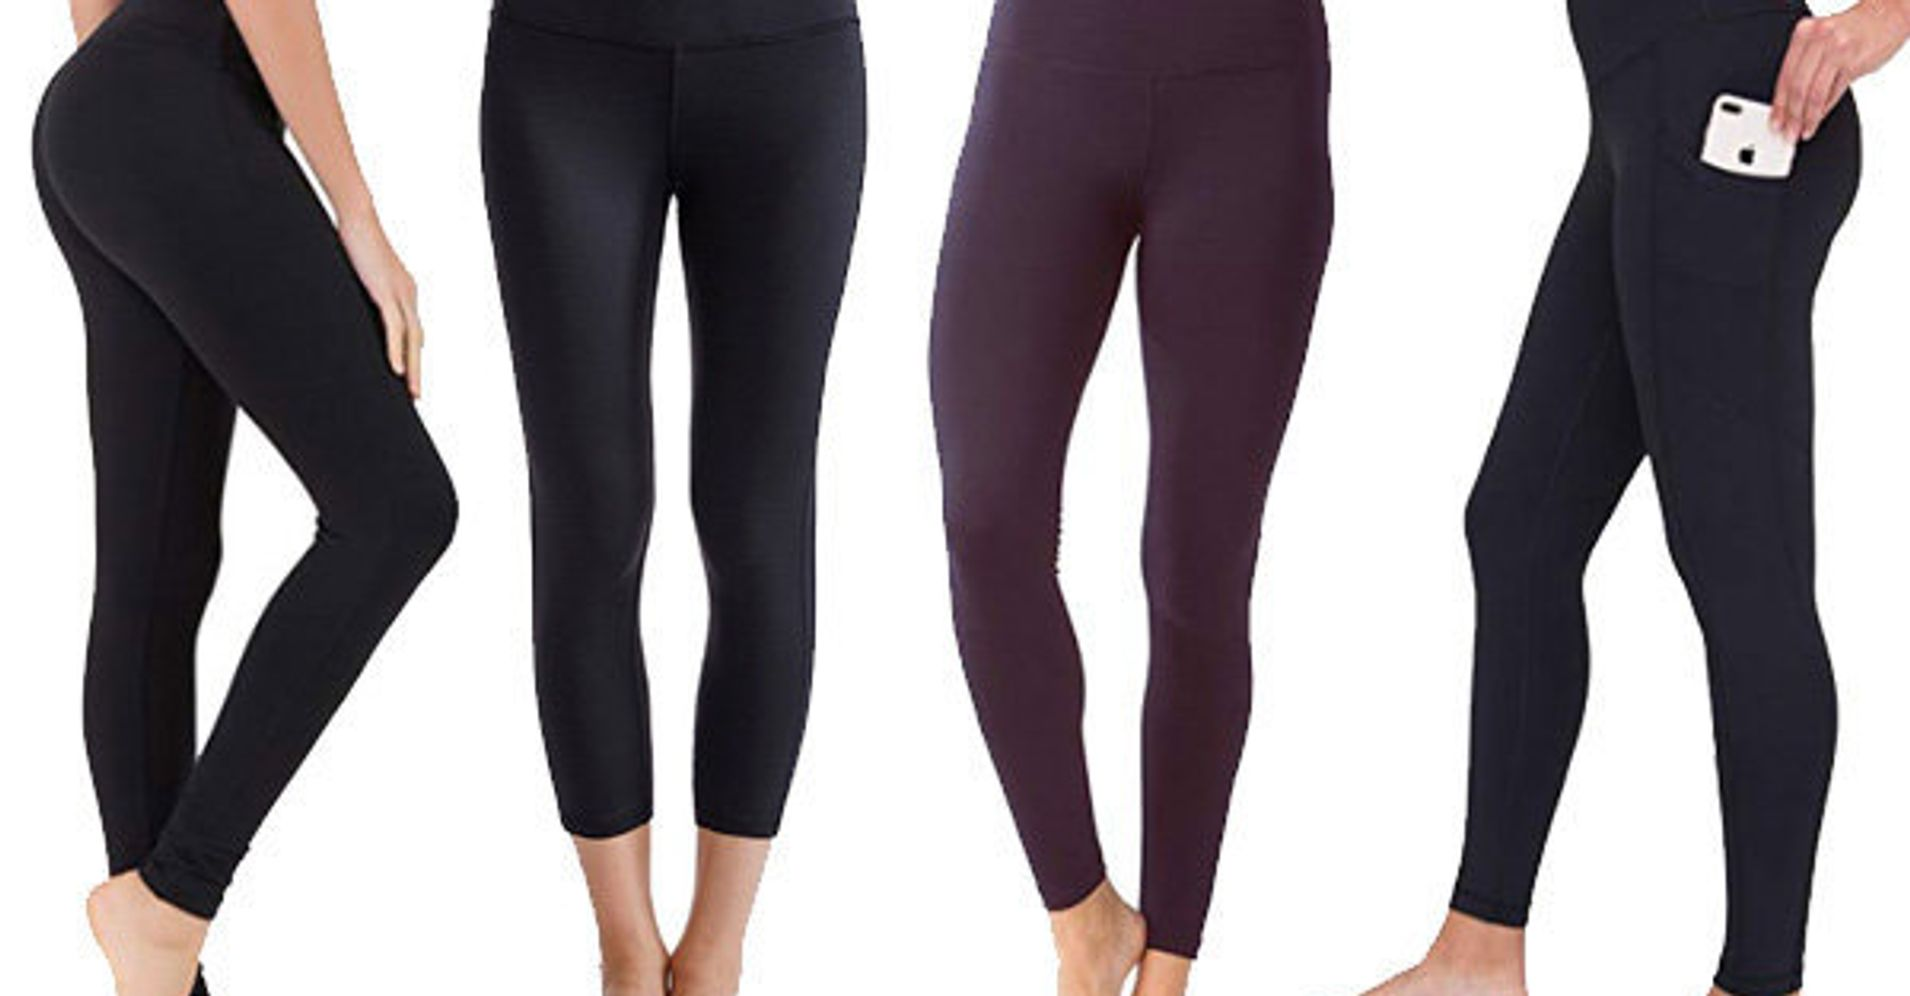 85400acb2e The Most Flattering Yoga Pants On Amazon, According To Reviewers | HuffPost  Life